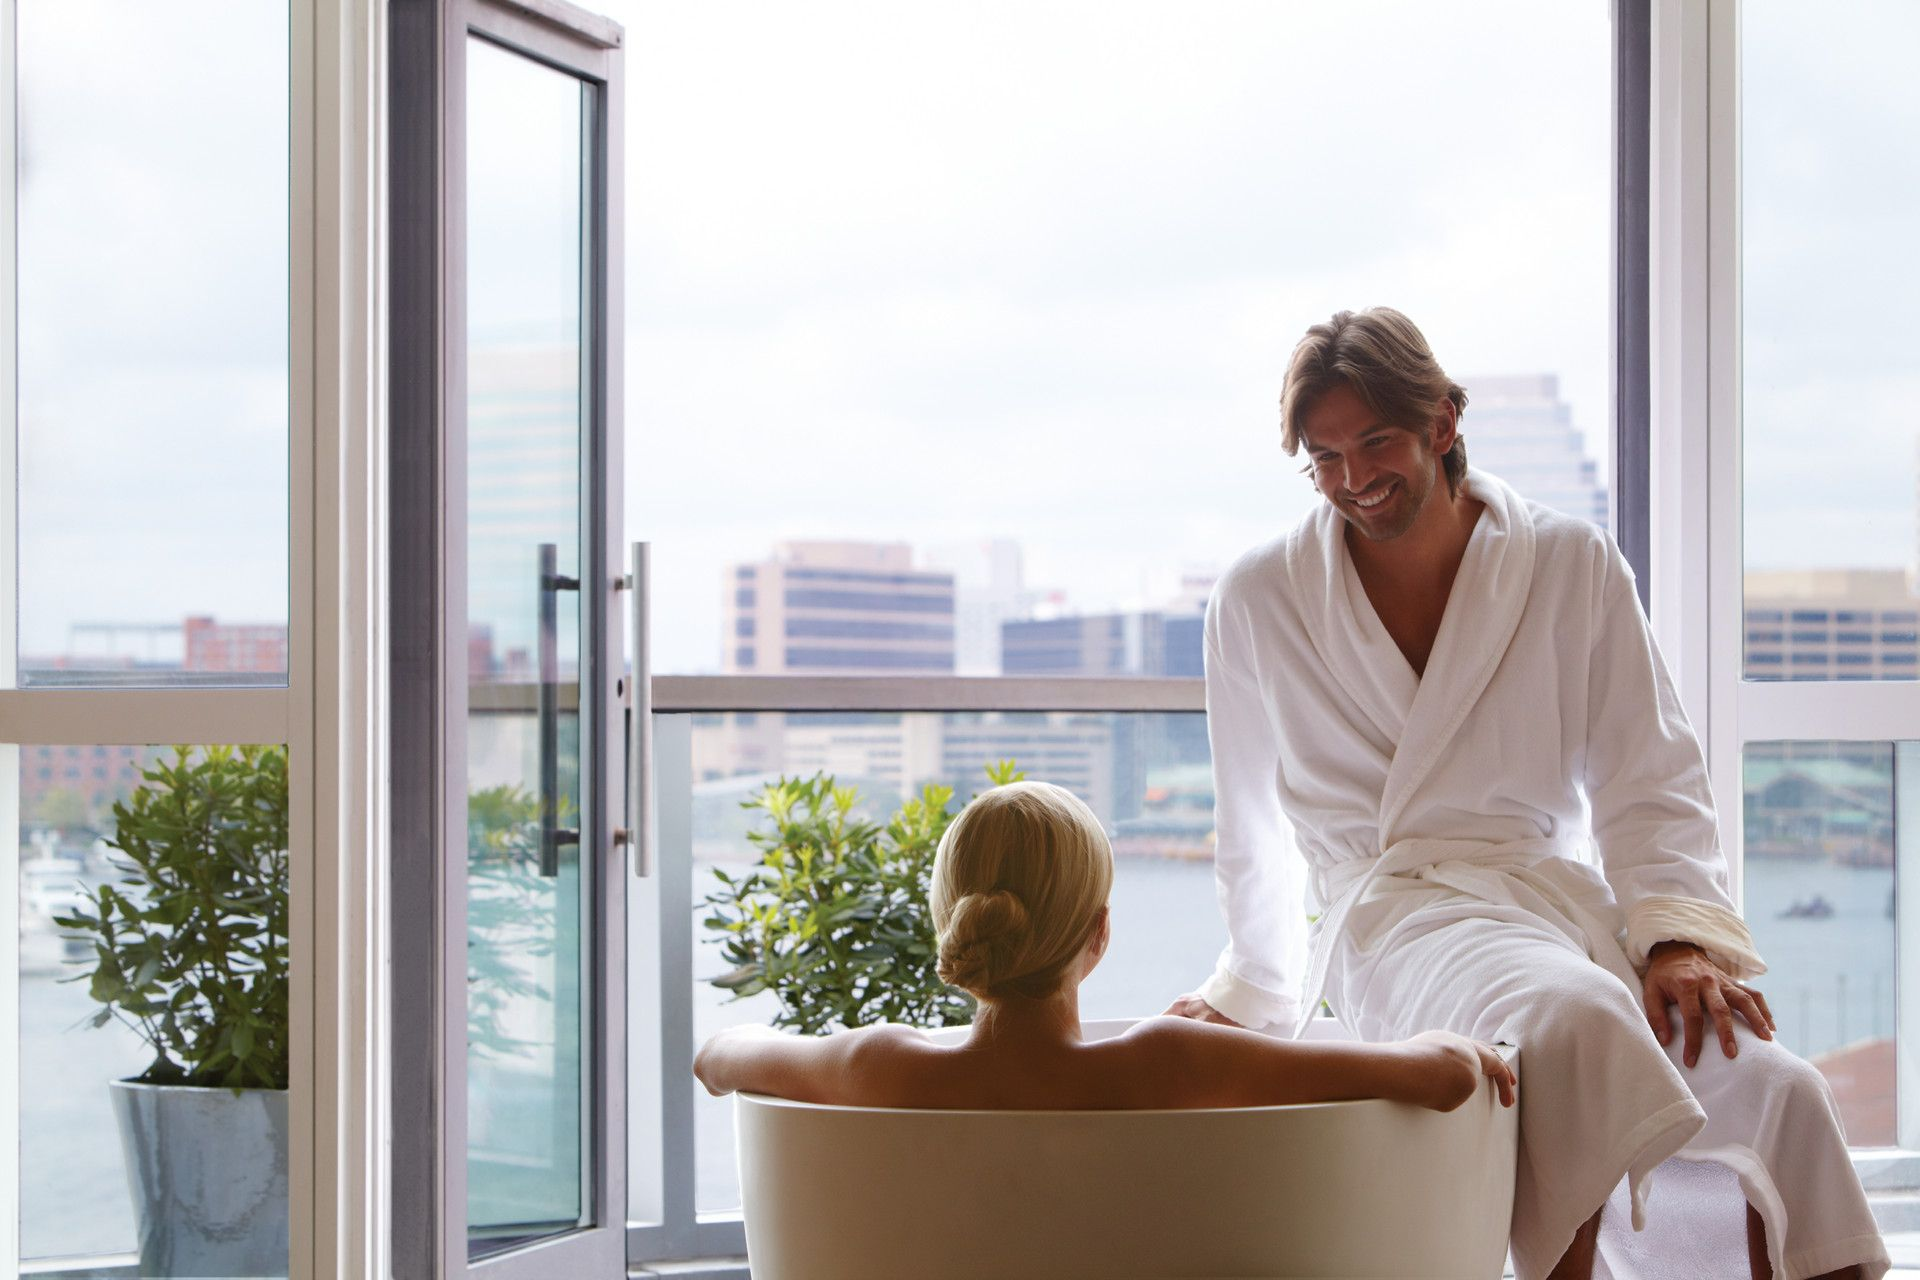 Romantic couples getaway at the spa at four seasons hotel for Spa weekend getaways for couples